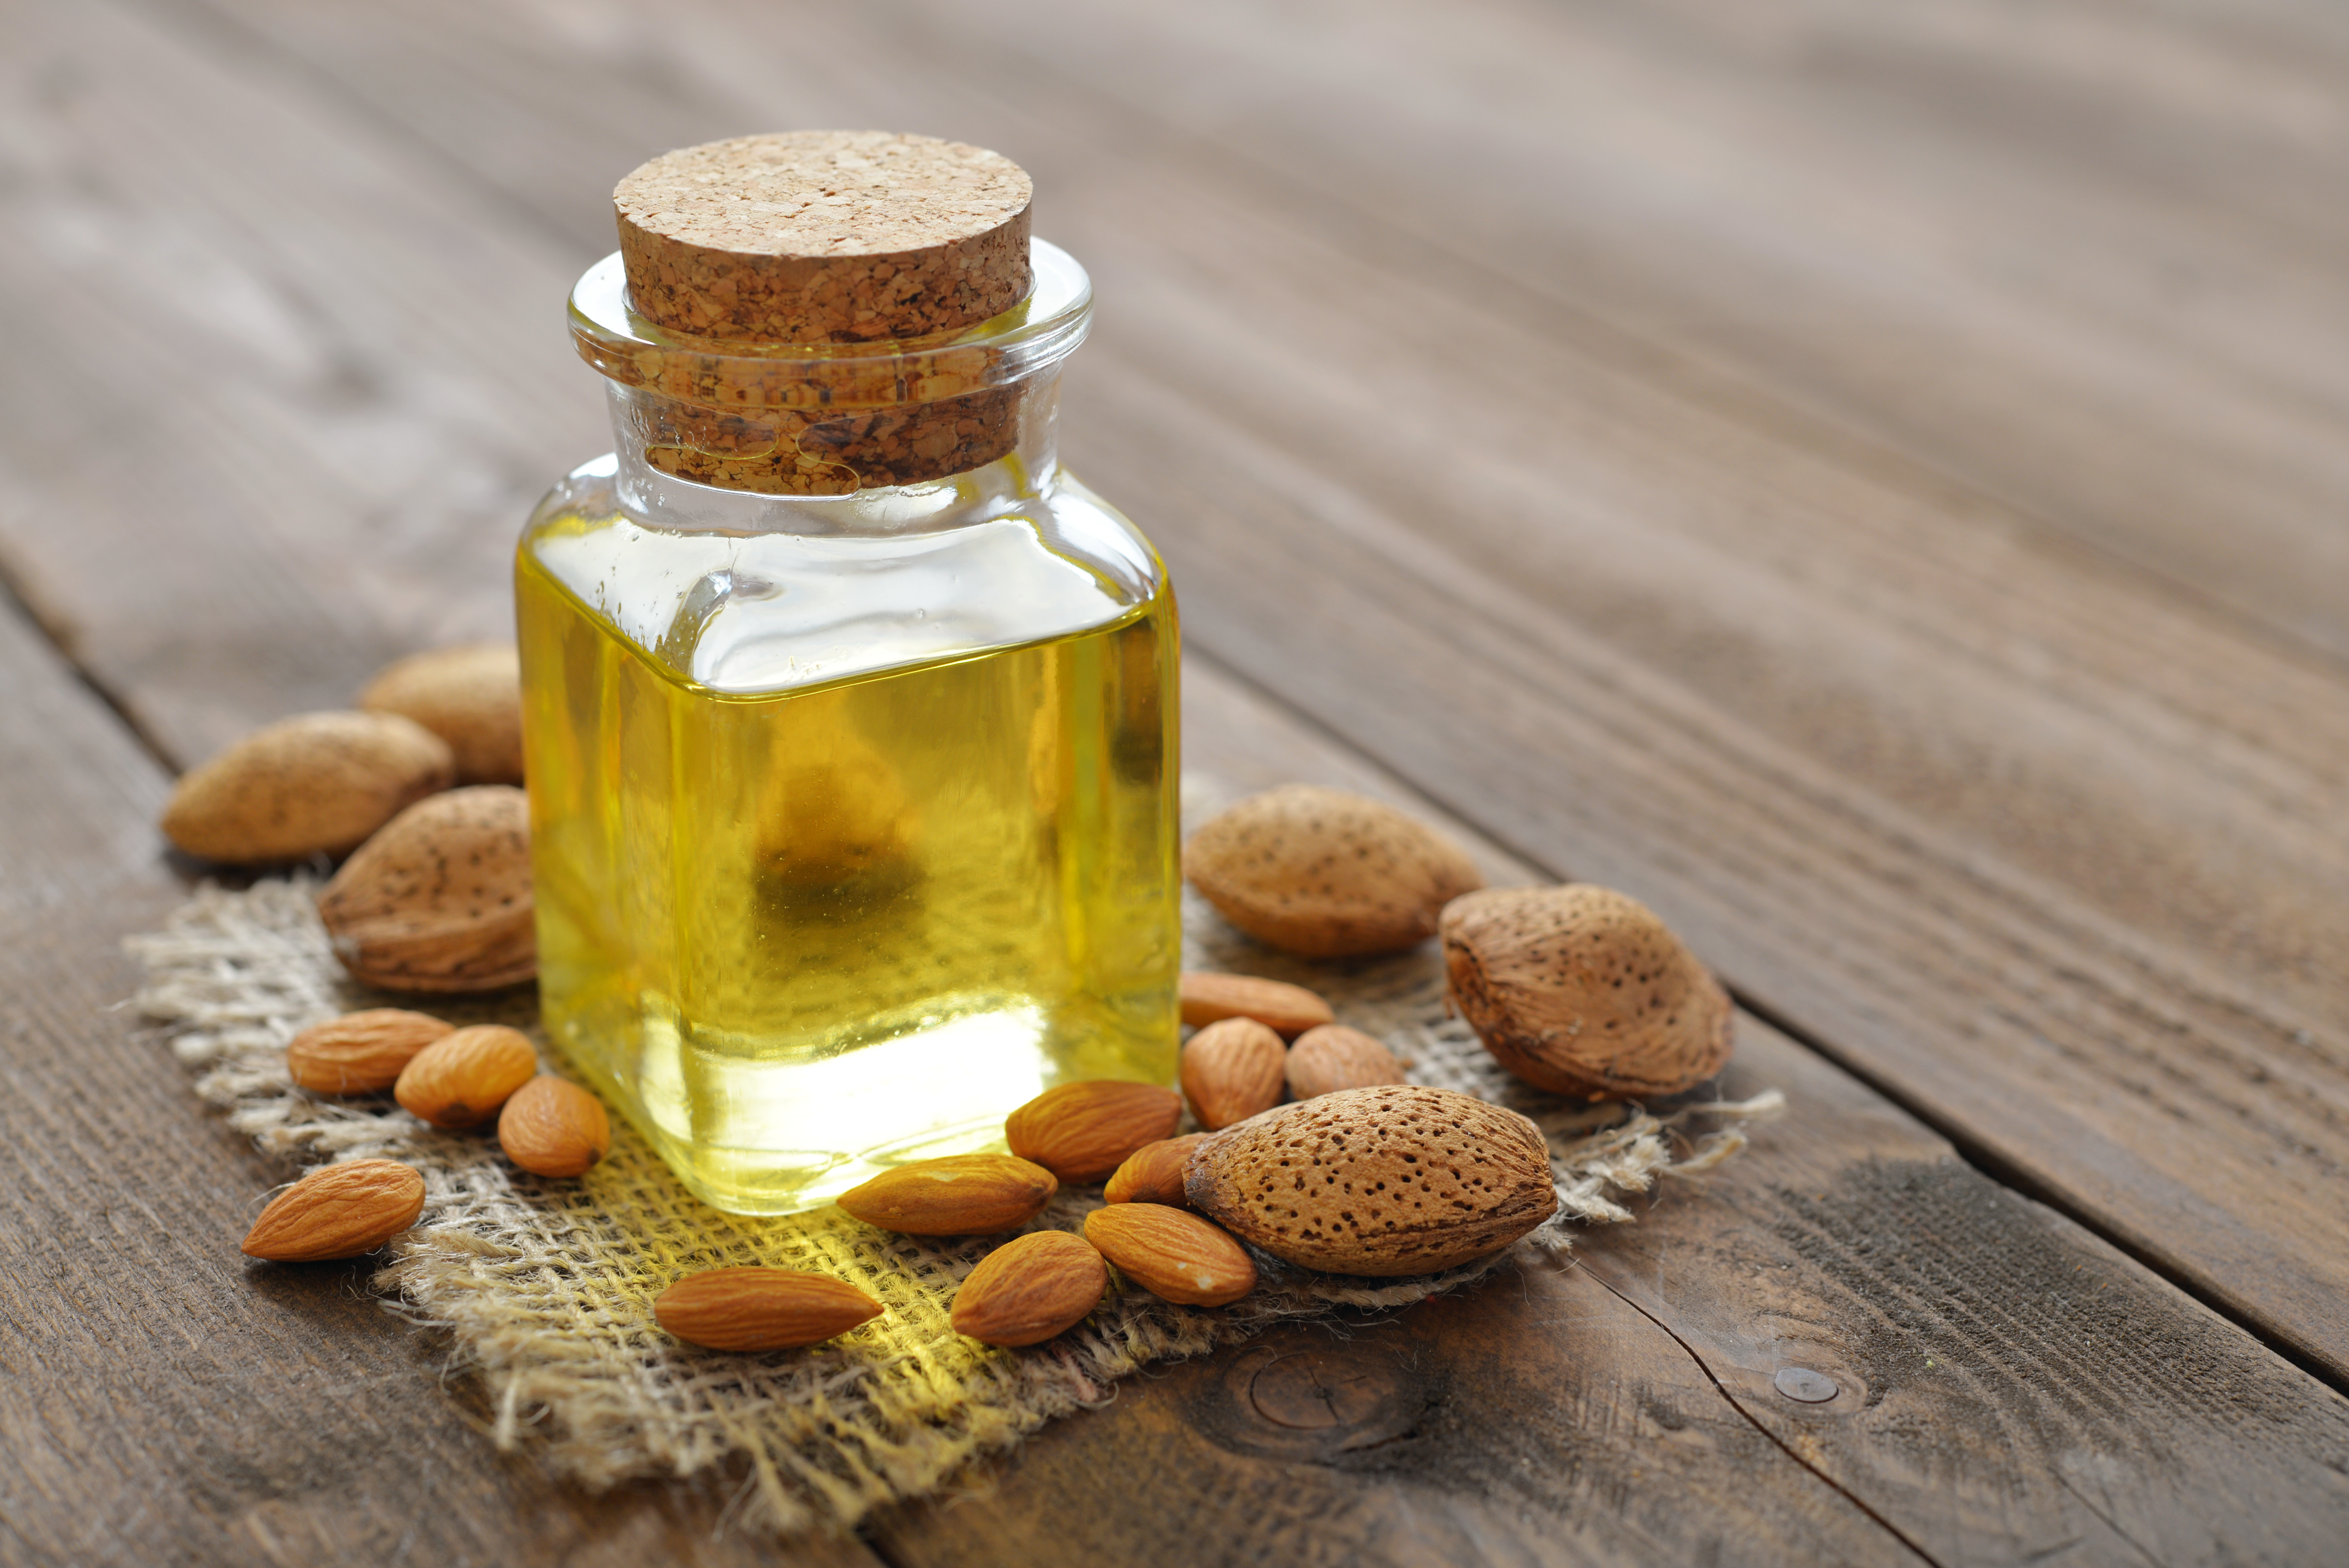 almond oil - oil washing - oil cleansing - nontoxic beauty - natural beauty- clean bath products - bath and body - all natural - makeup remover